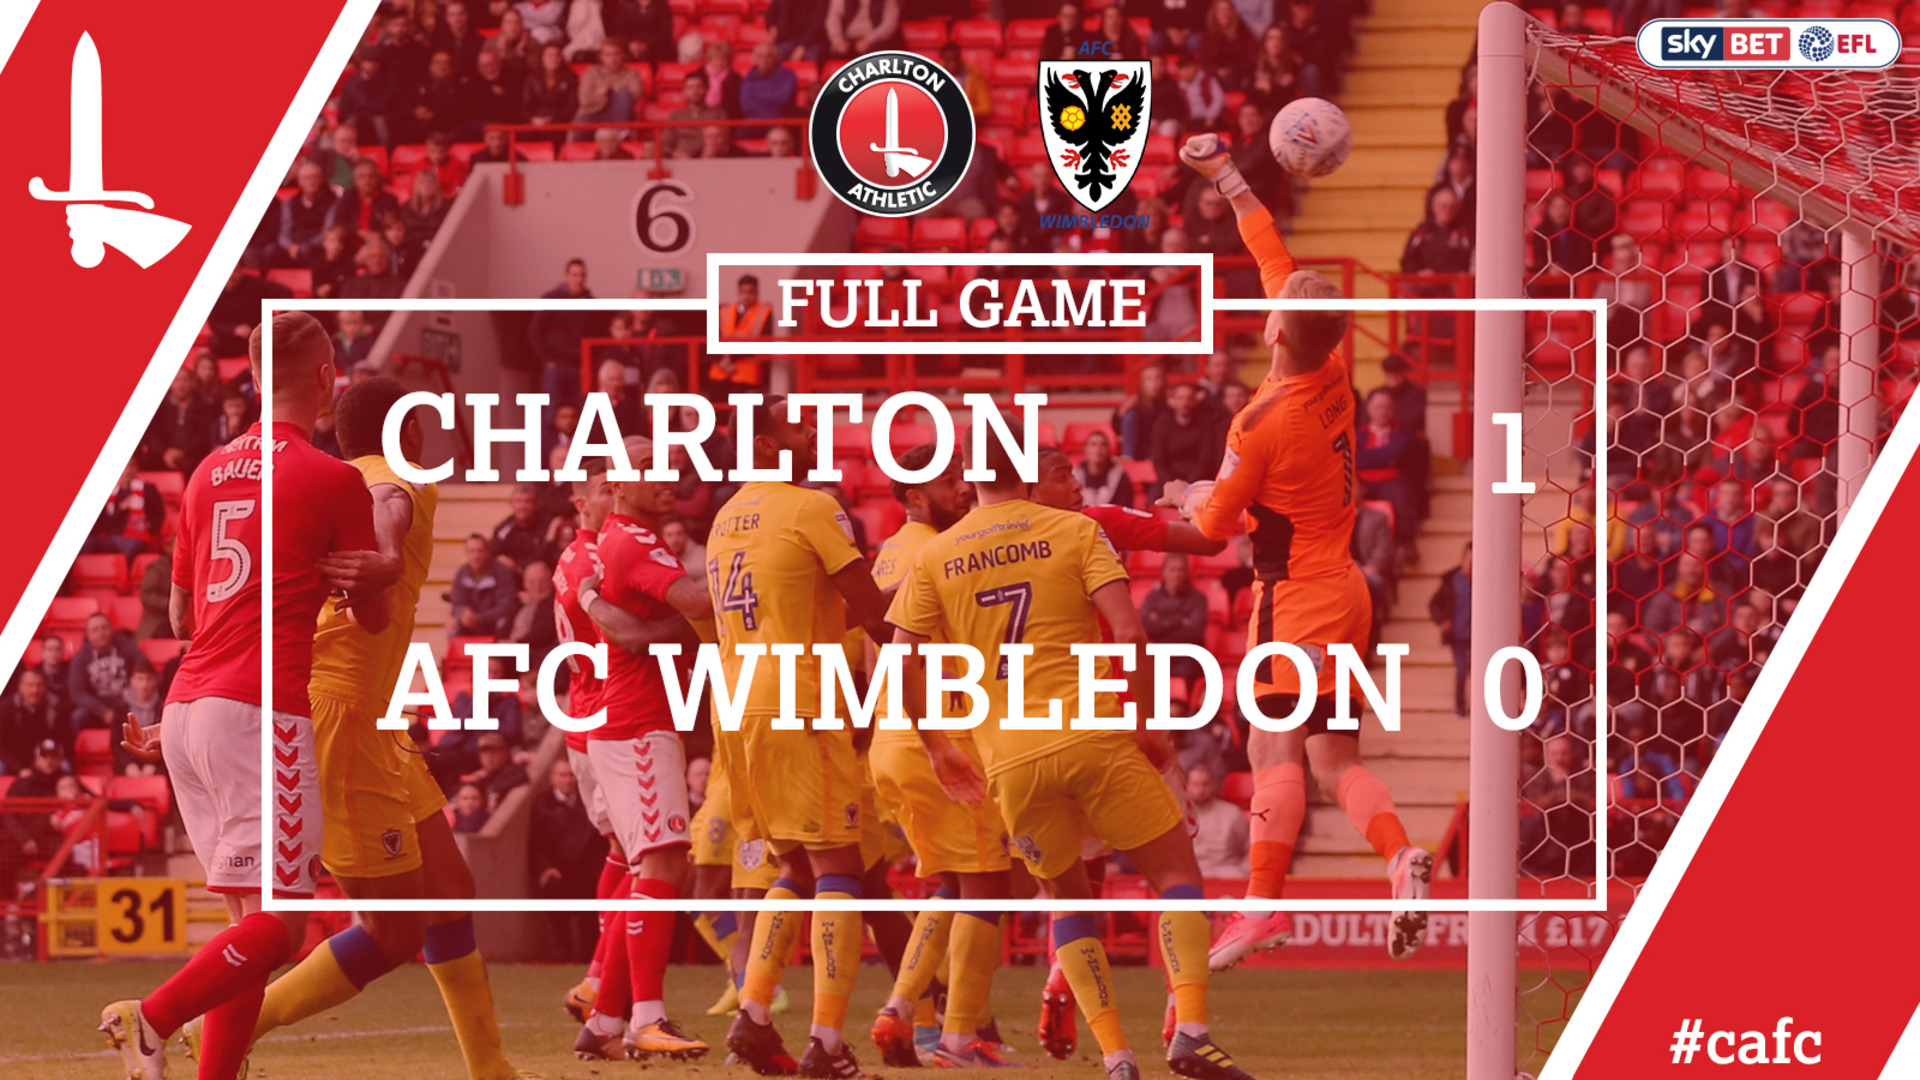 FULL GAME | Charlton 1 AFC Wimbledon 0